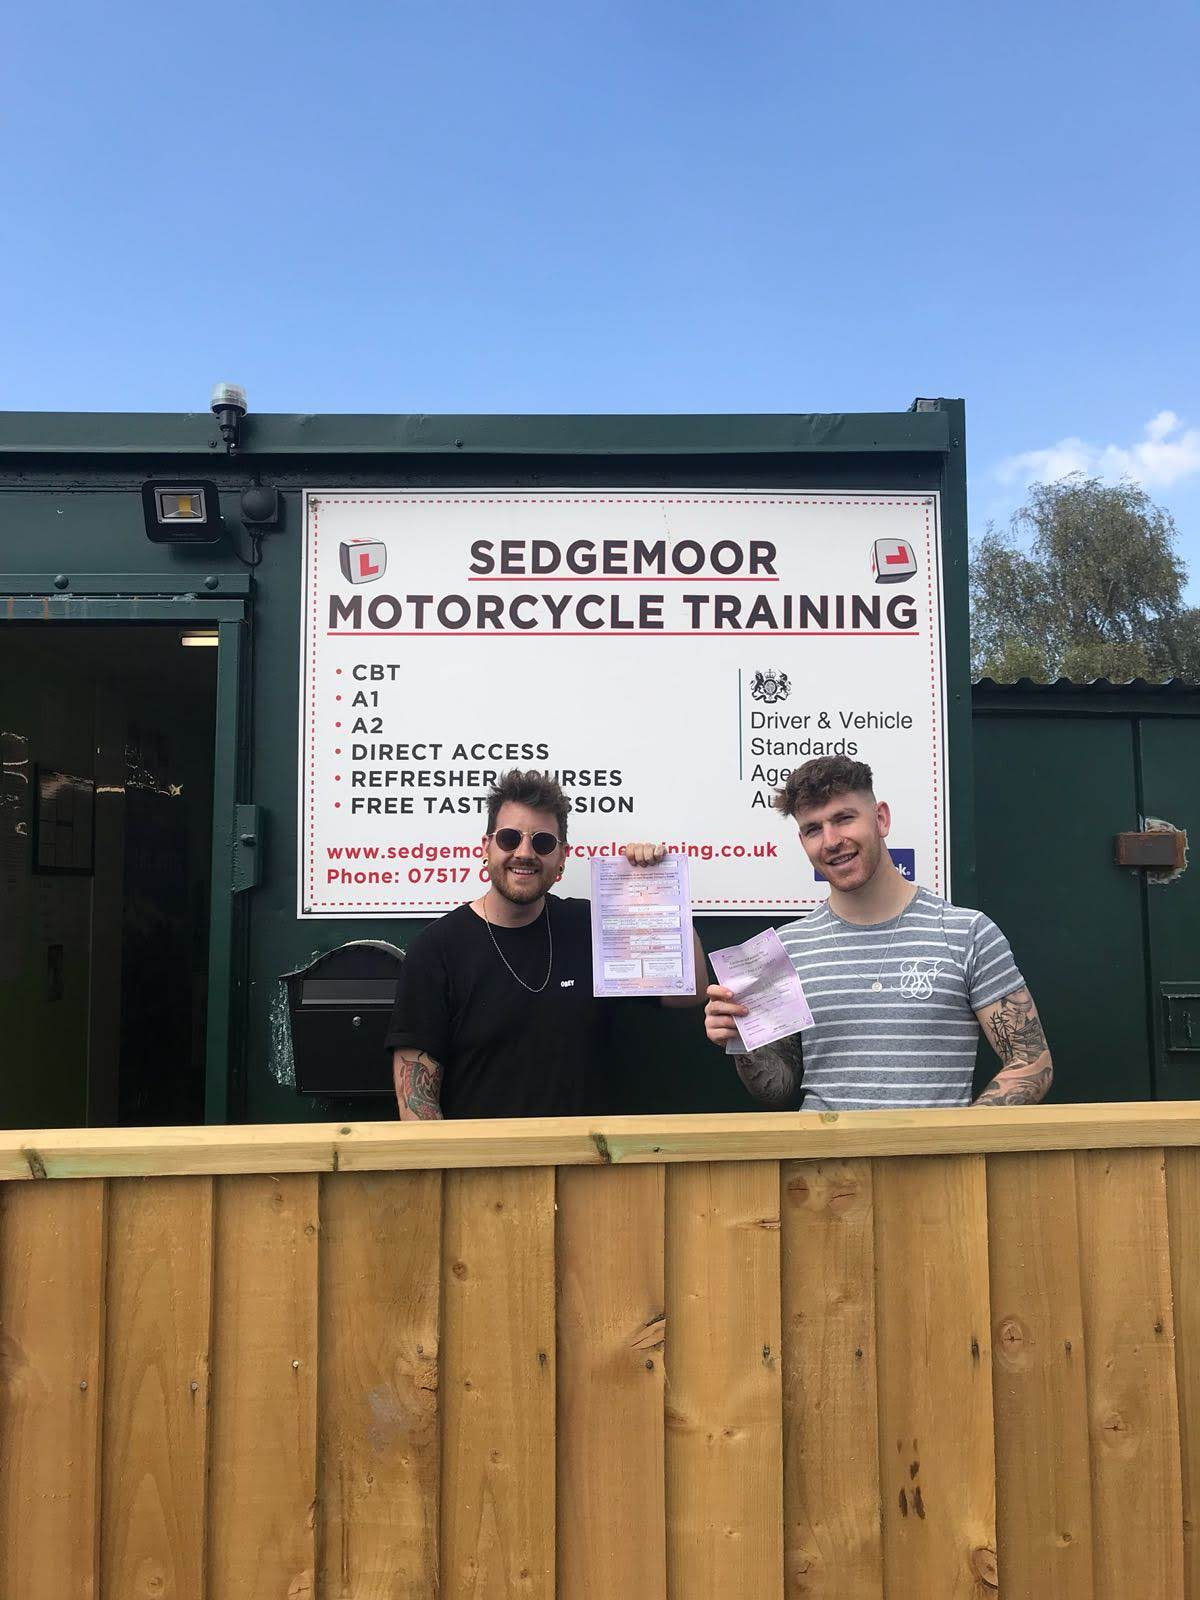 Mod 1 and CBT Success at Sedgemoor Motorcycle Training